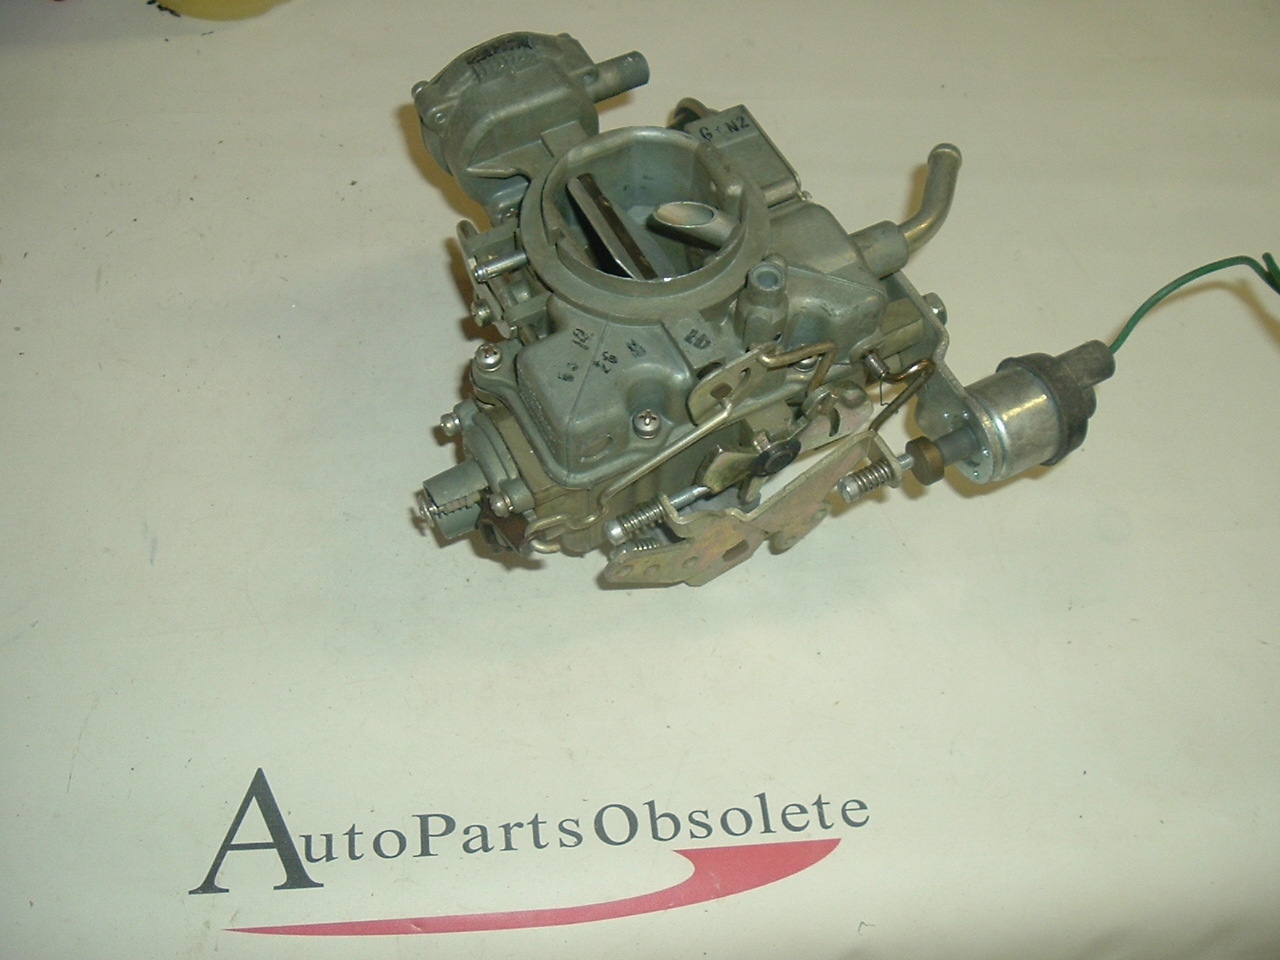 View Product1974 International carburetor 6 cyl nos (a 6600 holley new)